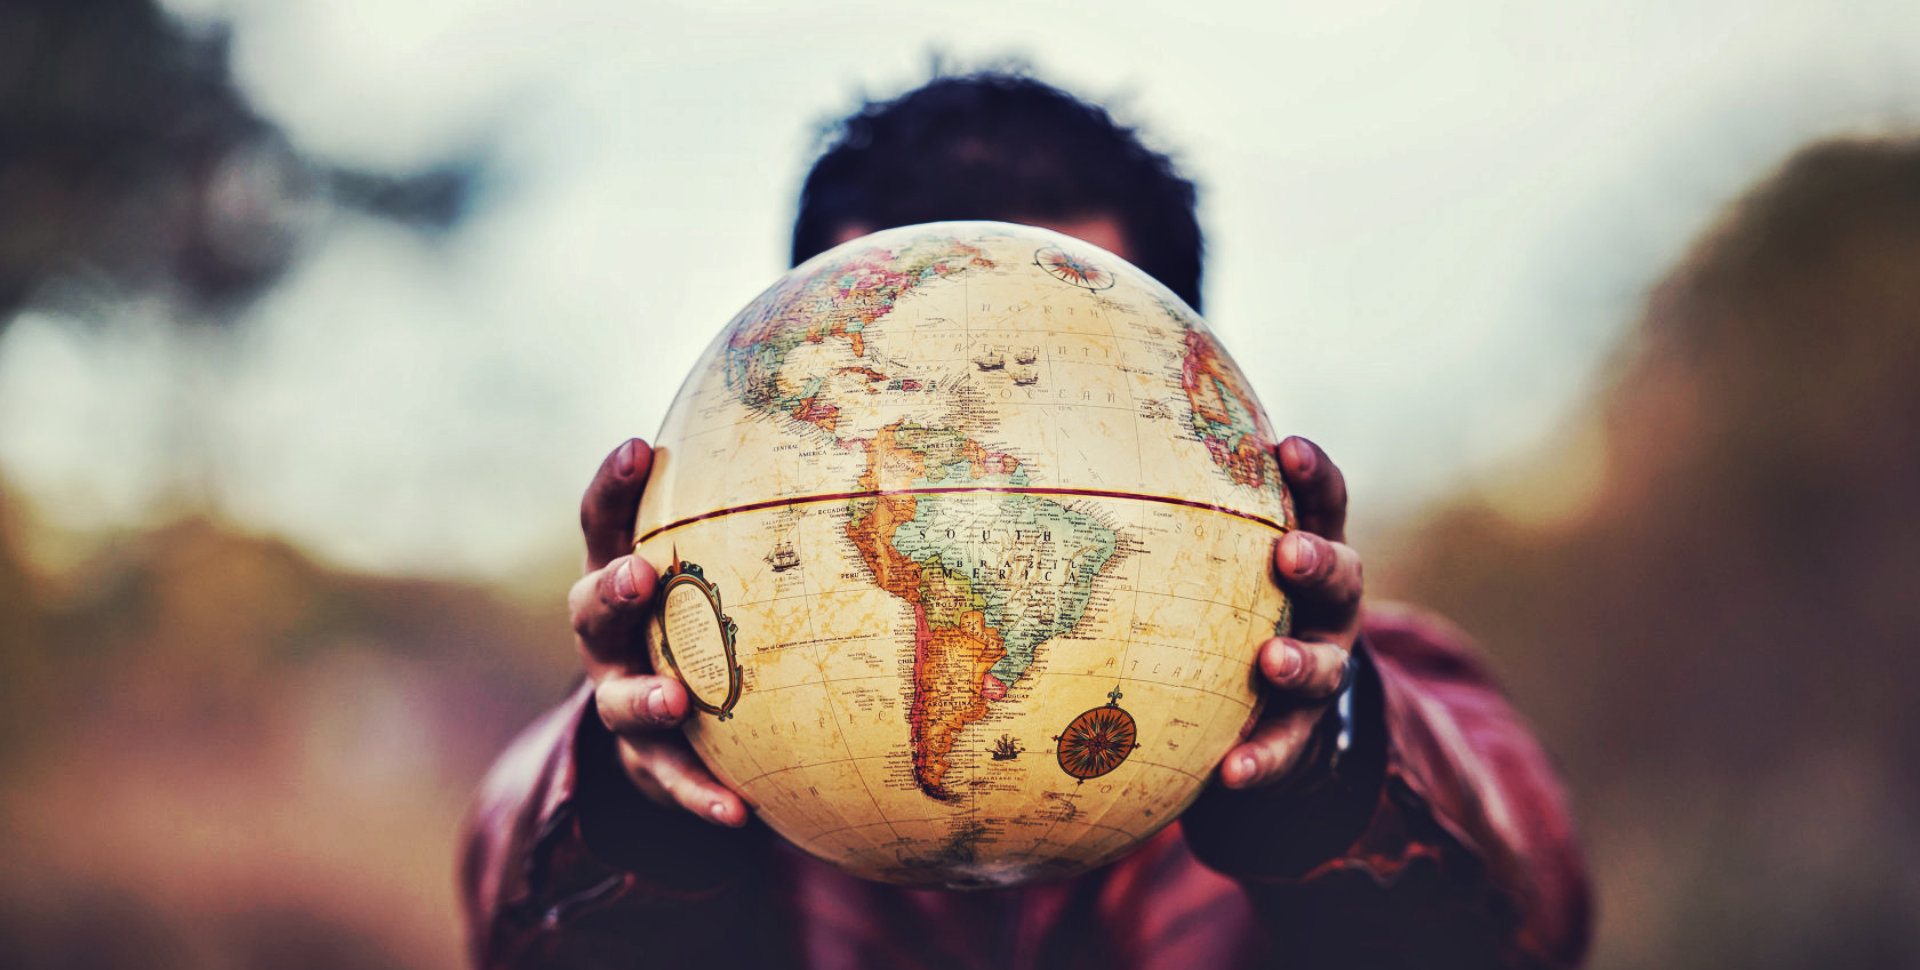 man holding a globe in his hands